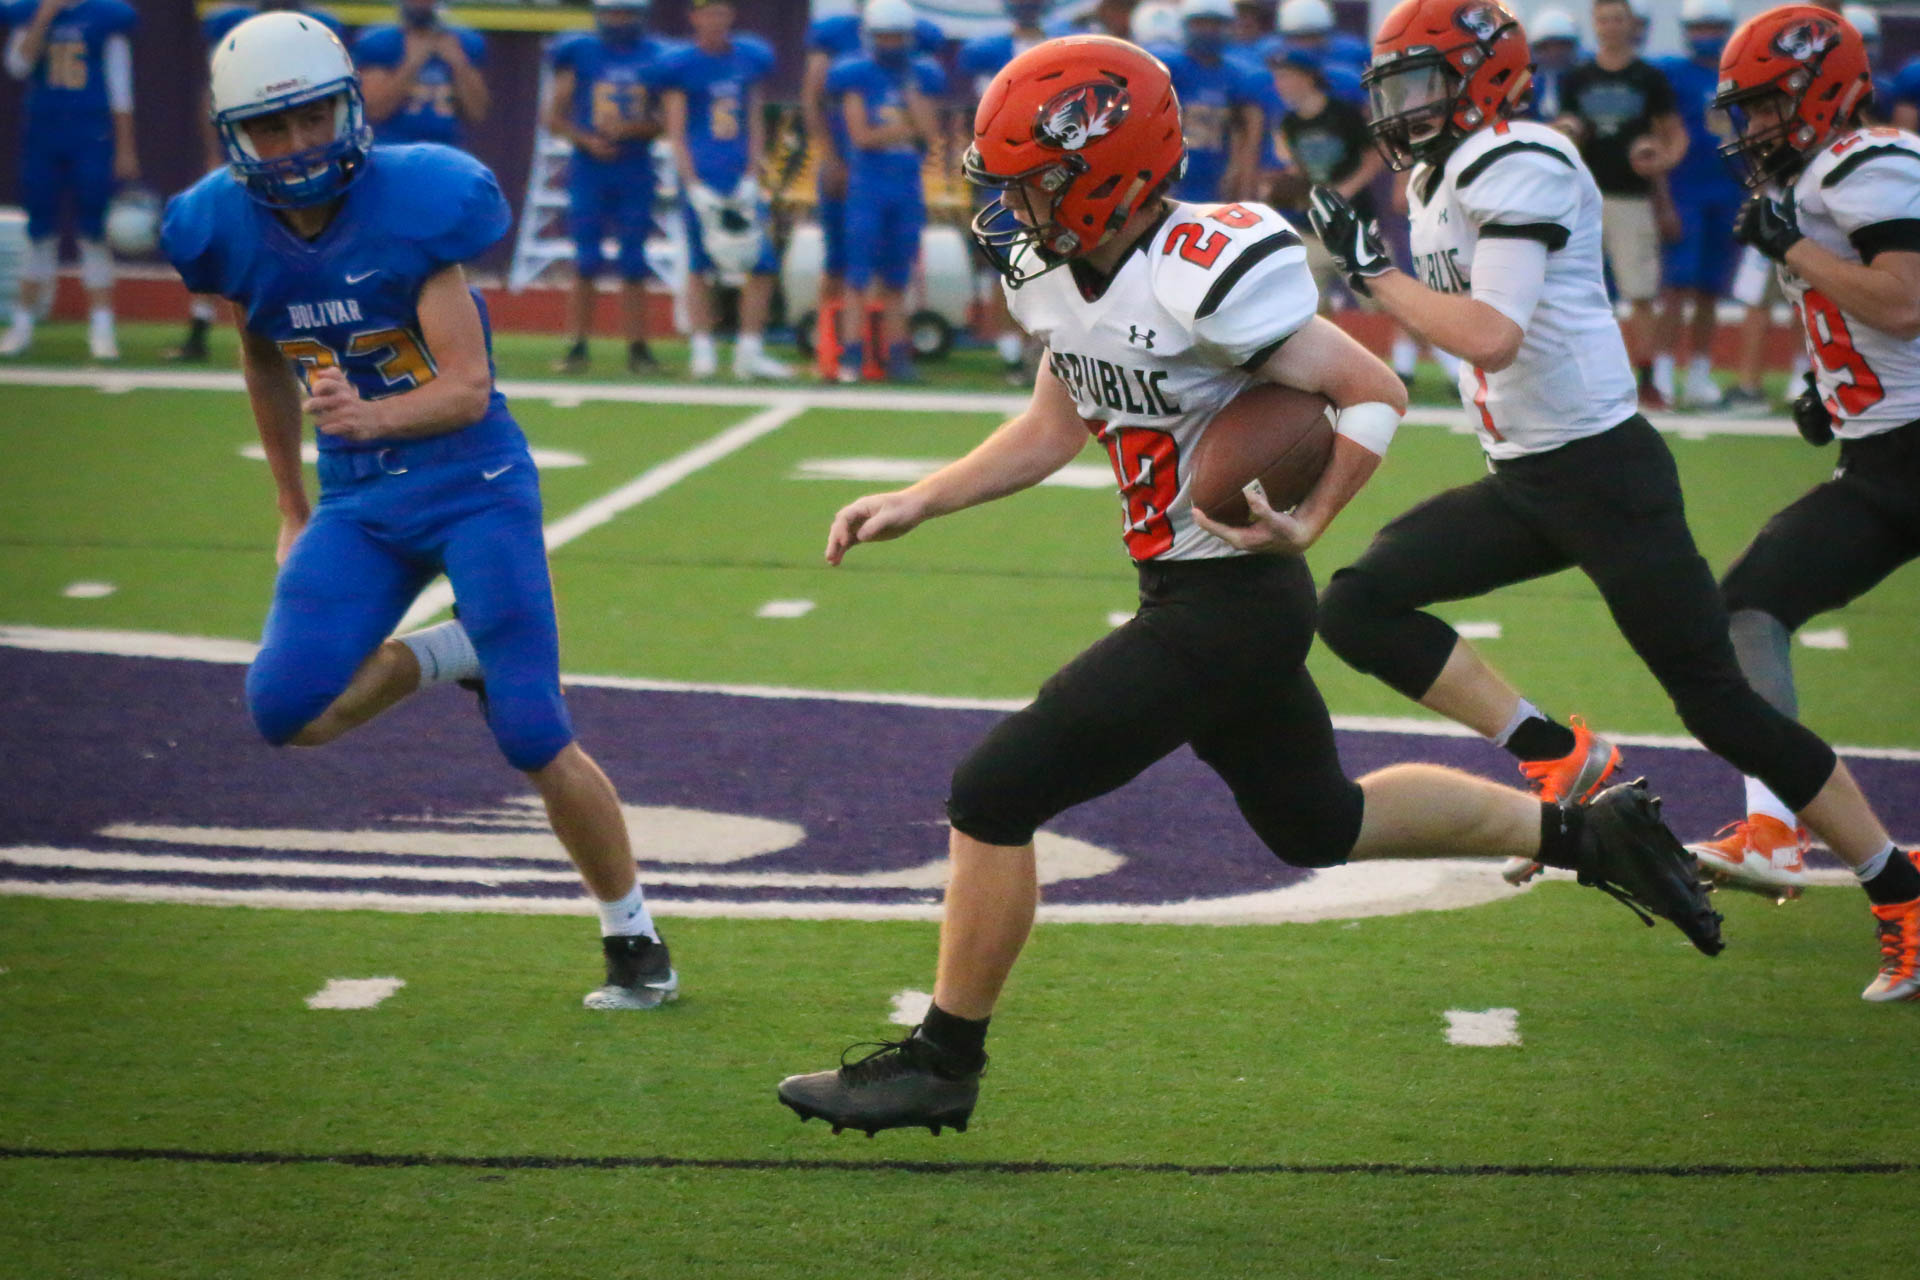 Photos: Varsity Football Vs Bolivar